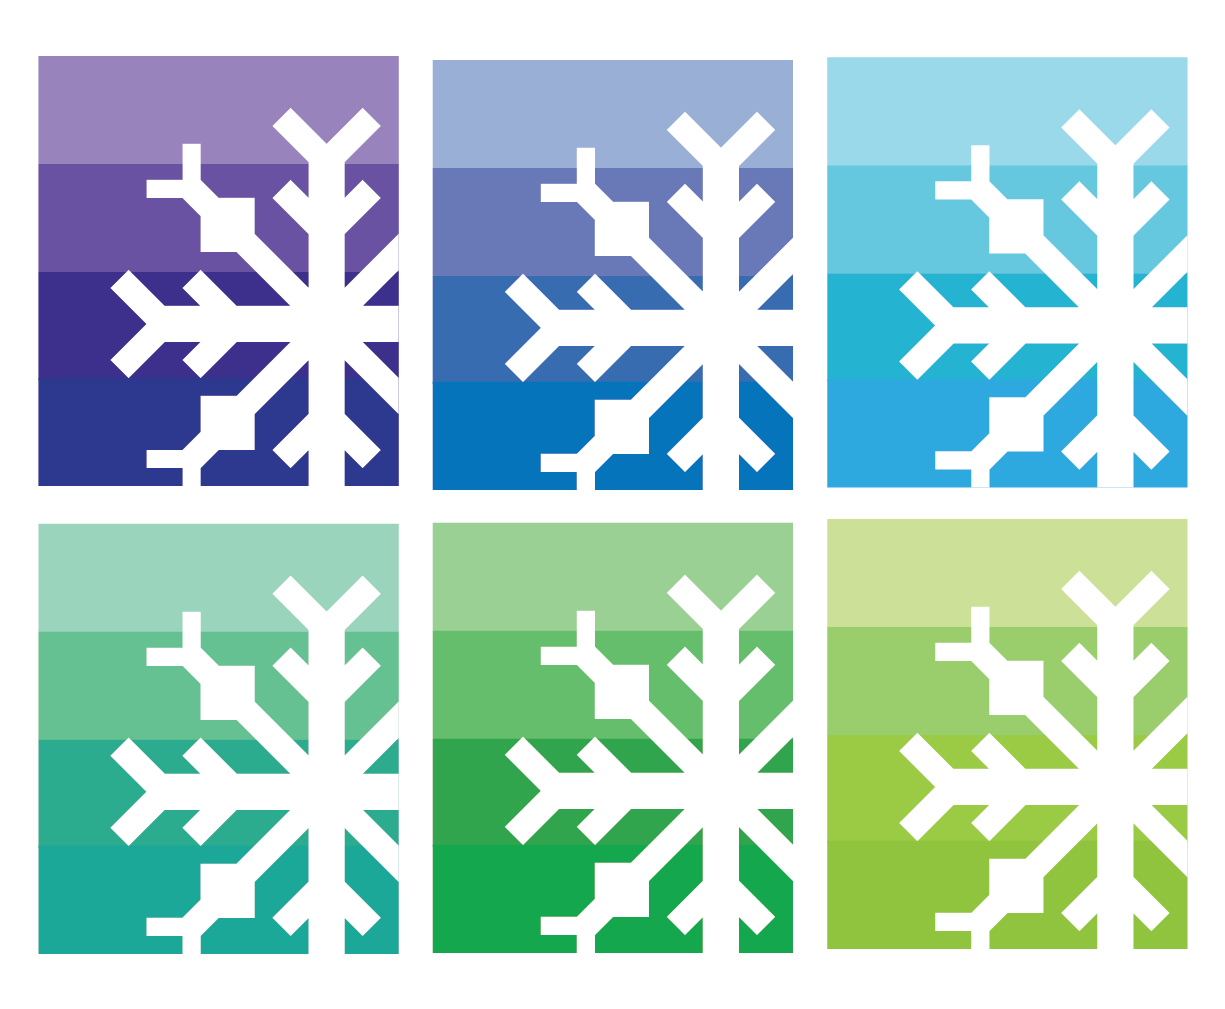 Snowflake Quilt in Gradient of Cool Colors